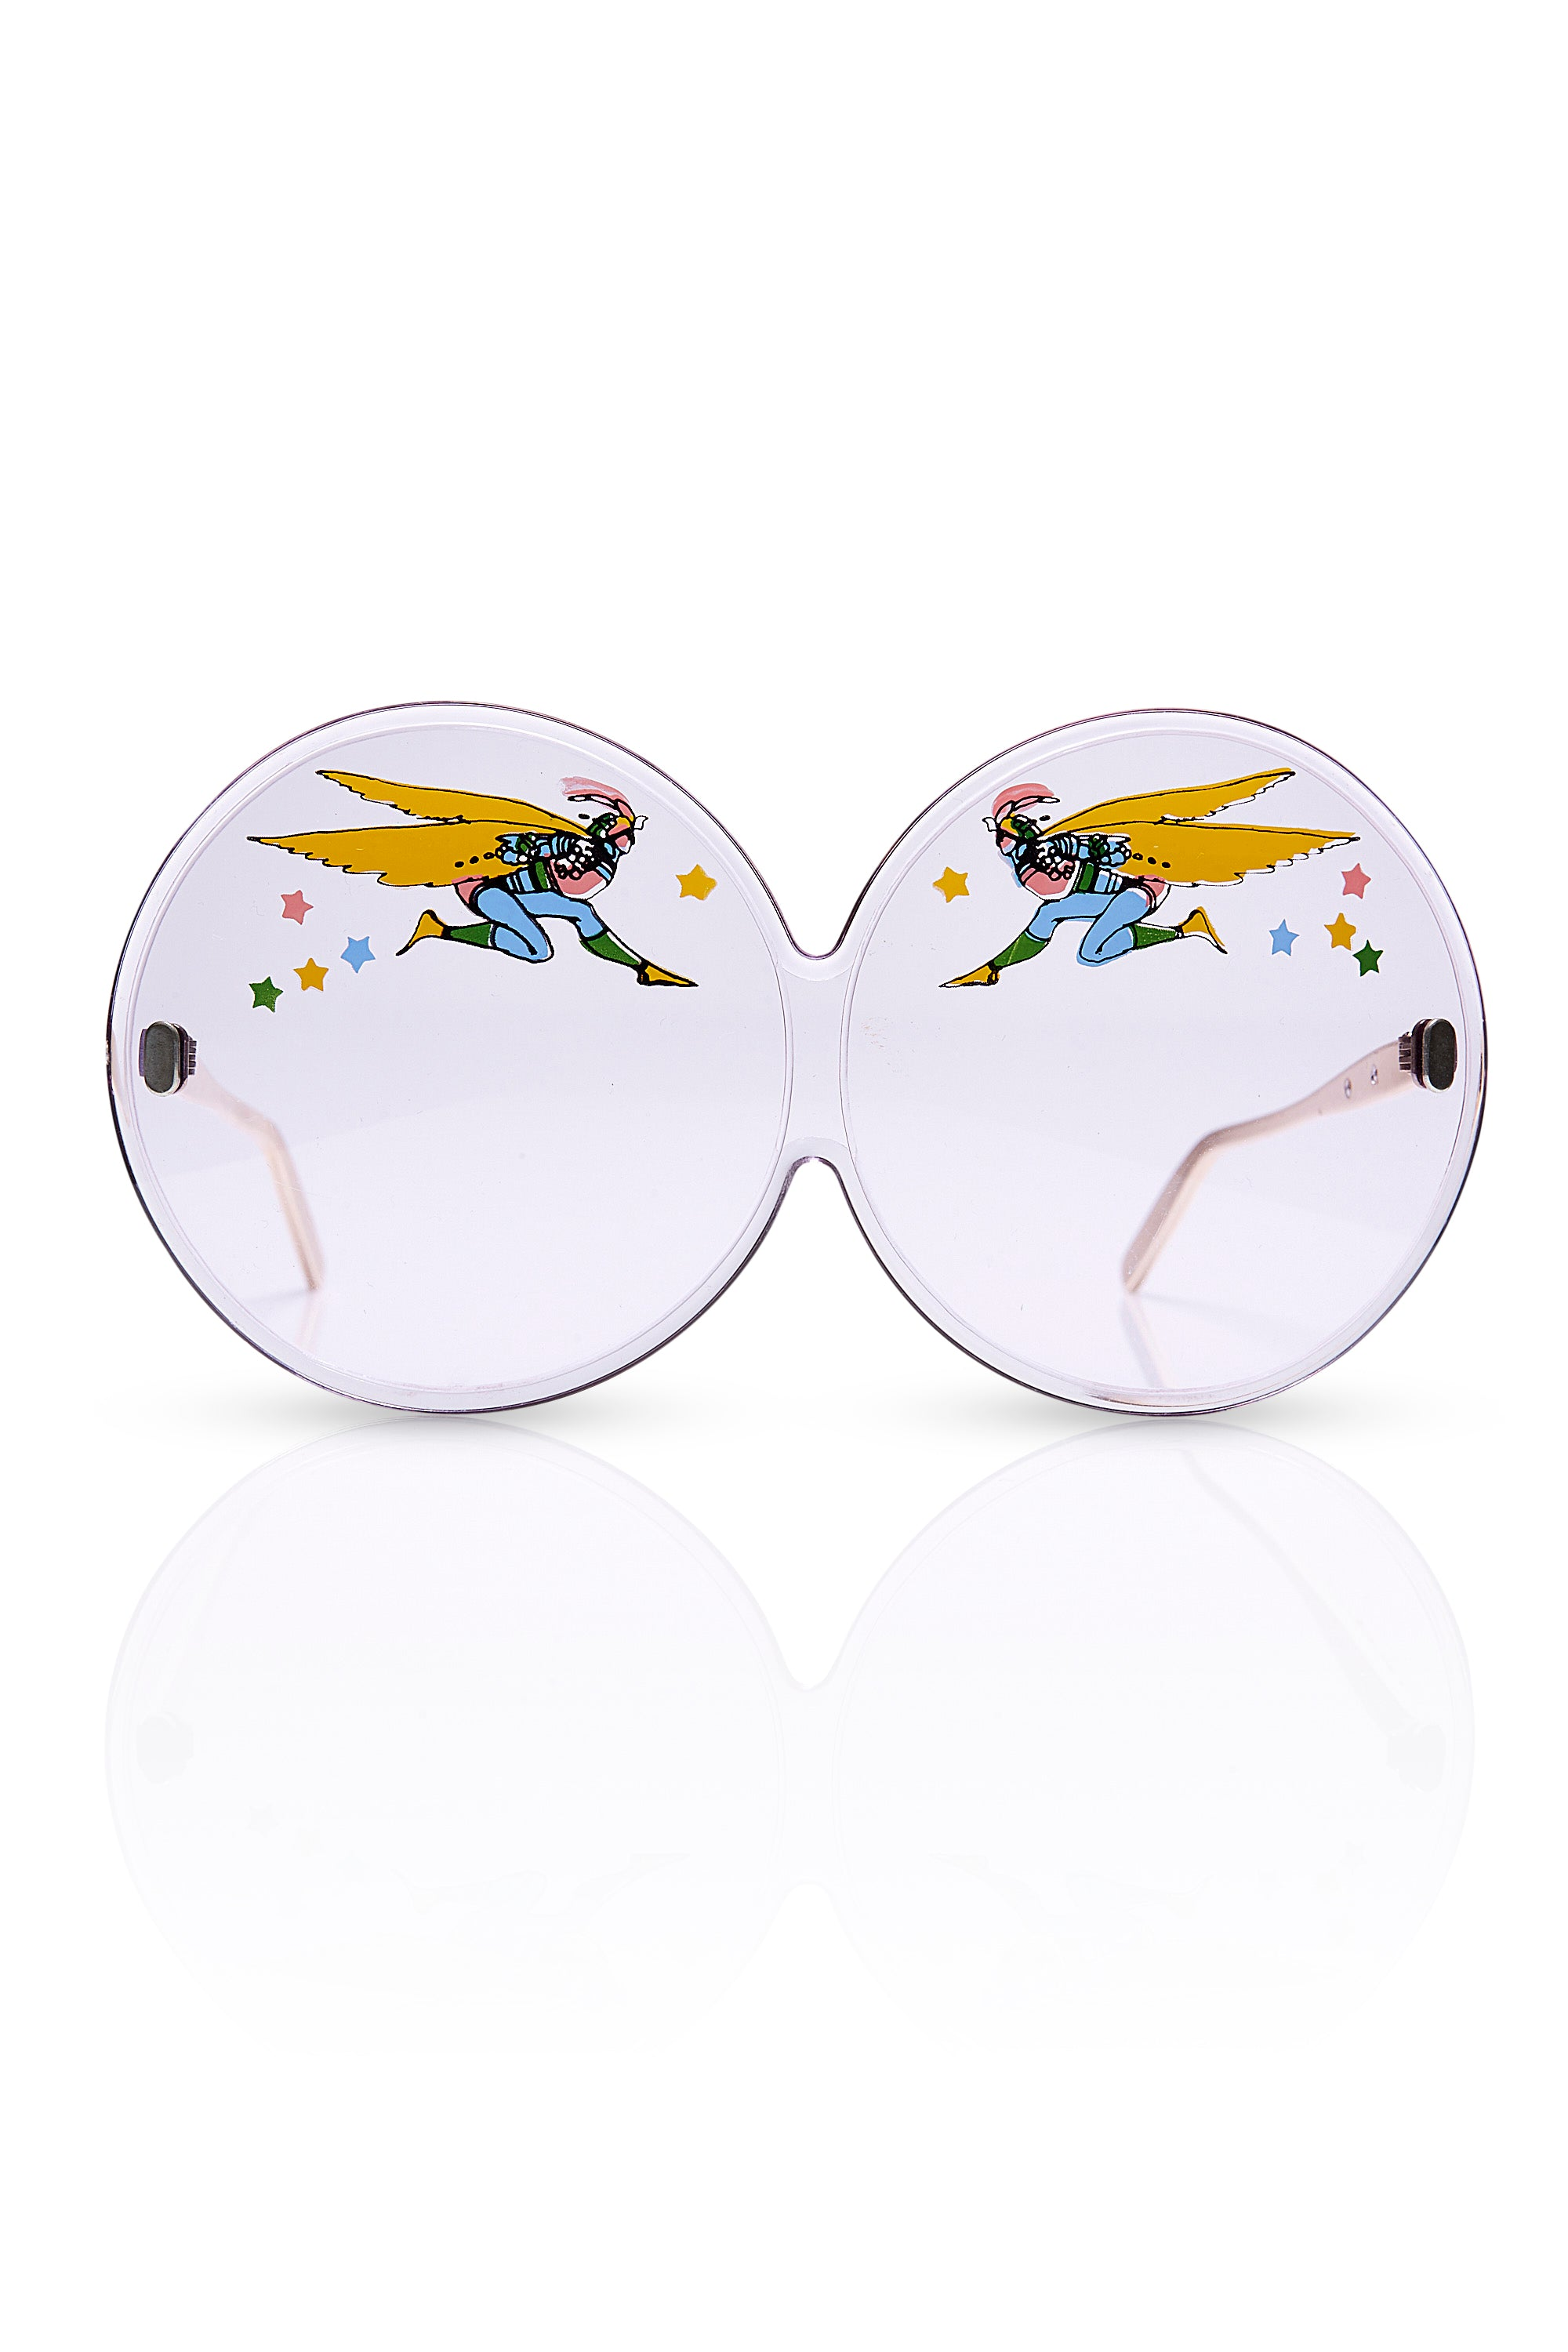 Peter Max<br>1960's super rare wearable art graphic lense sunglasses